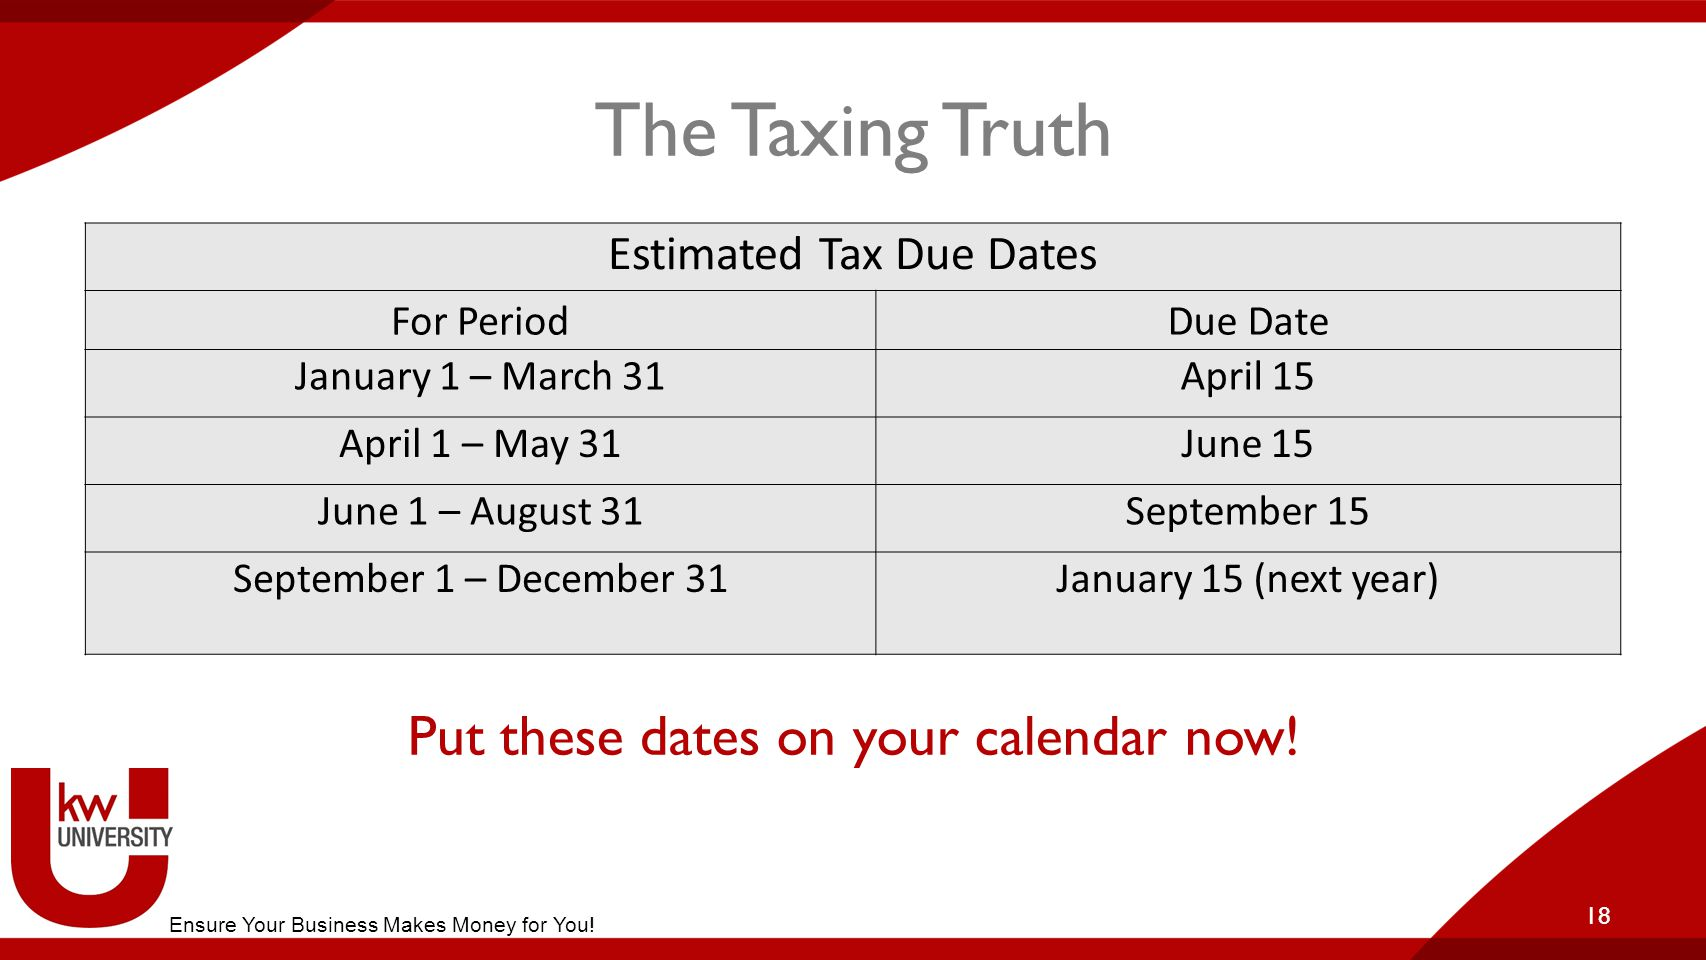 18 The Taxing Truth Estimated Tax Due Dates For PeriodDue Date January 1 – March 31April 15 April 1 – May 31June 15 June 1 – August 31September 15 September 1 – December 31January 15 (next year) Put these dates on your calendar now.